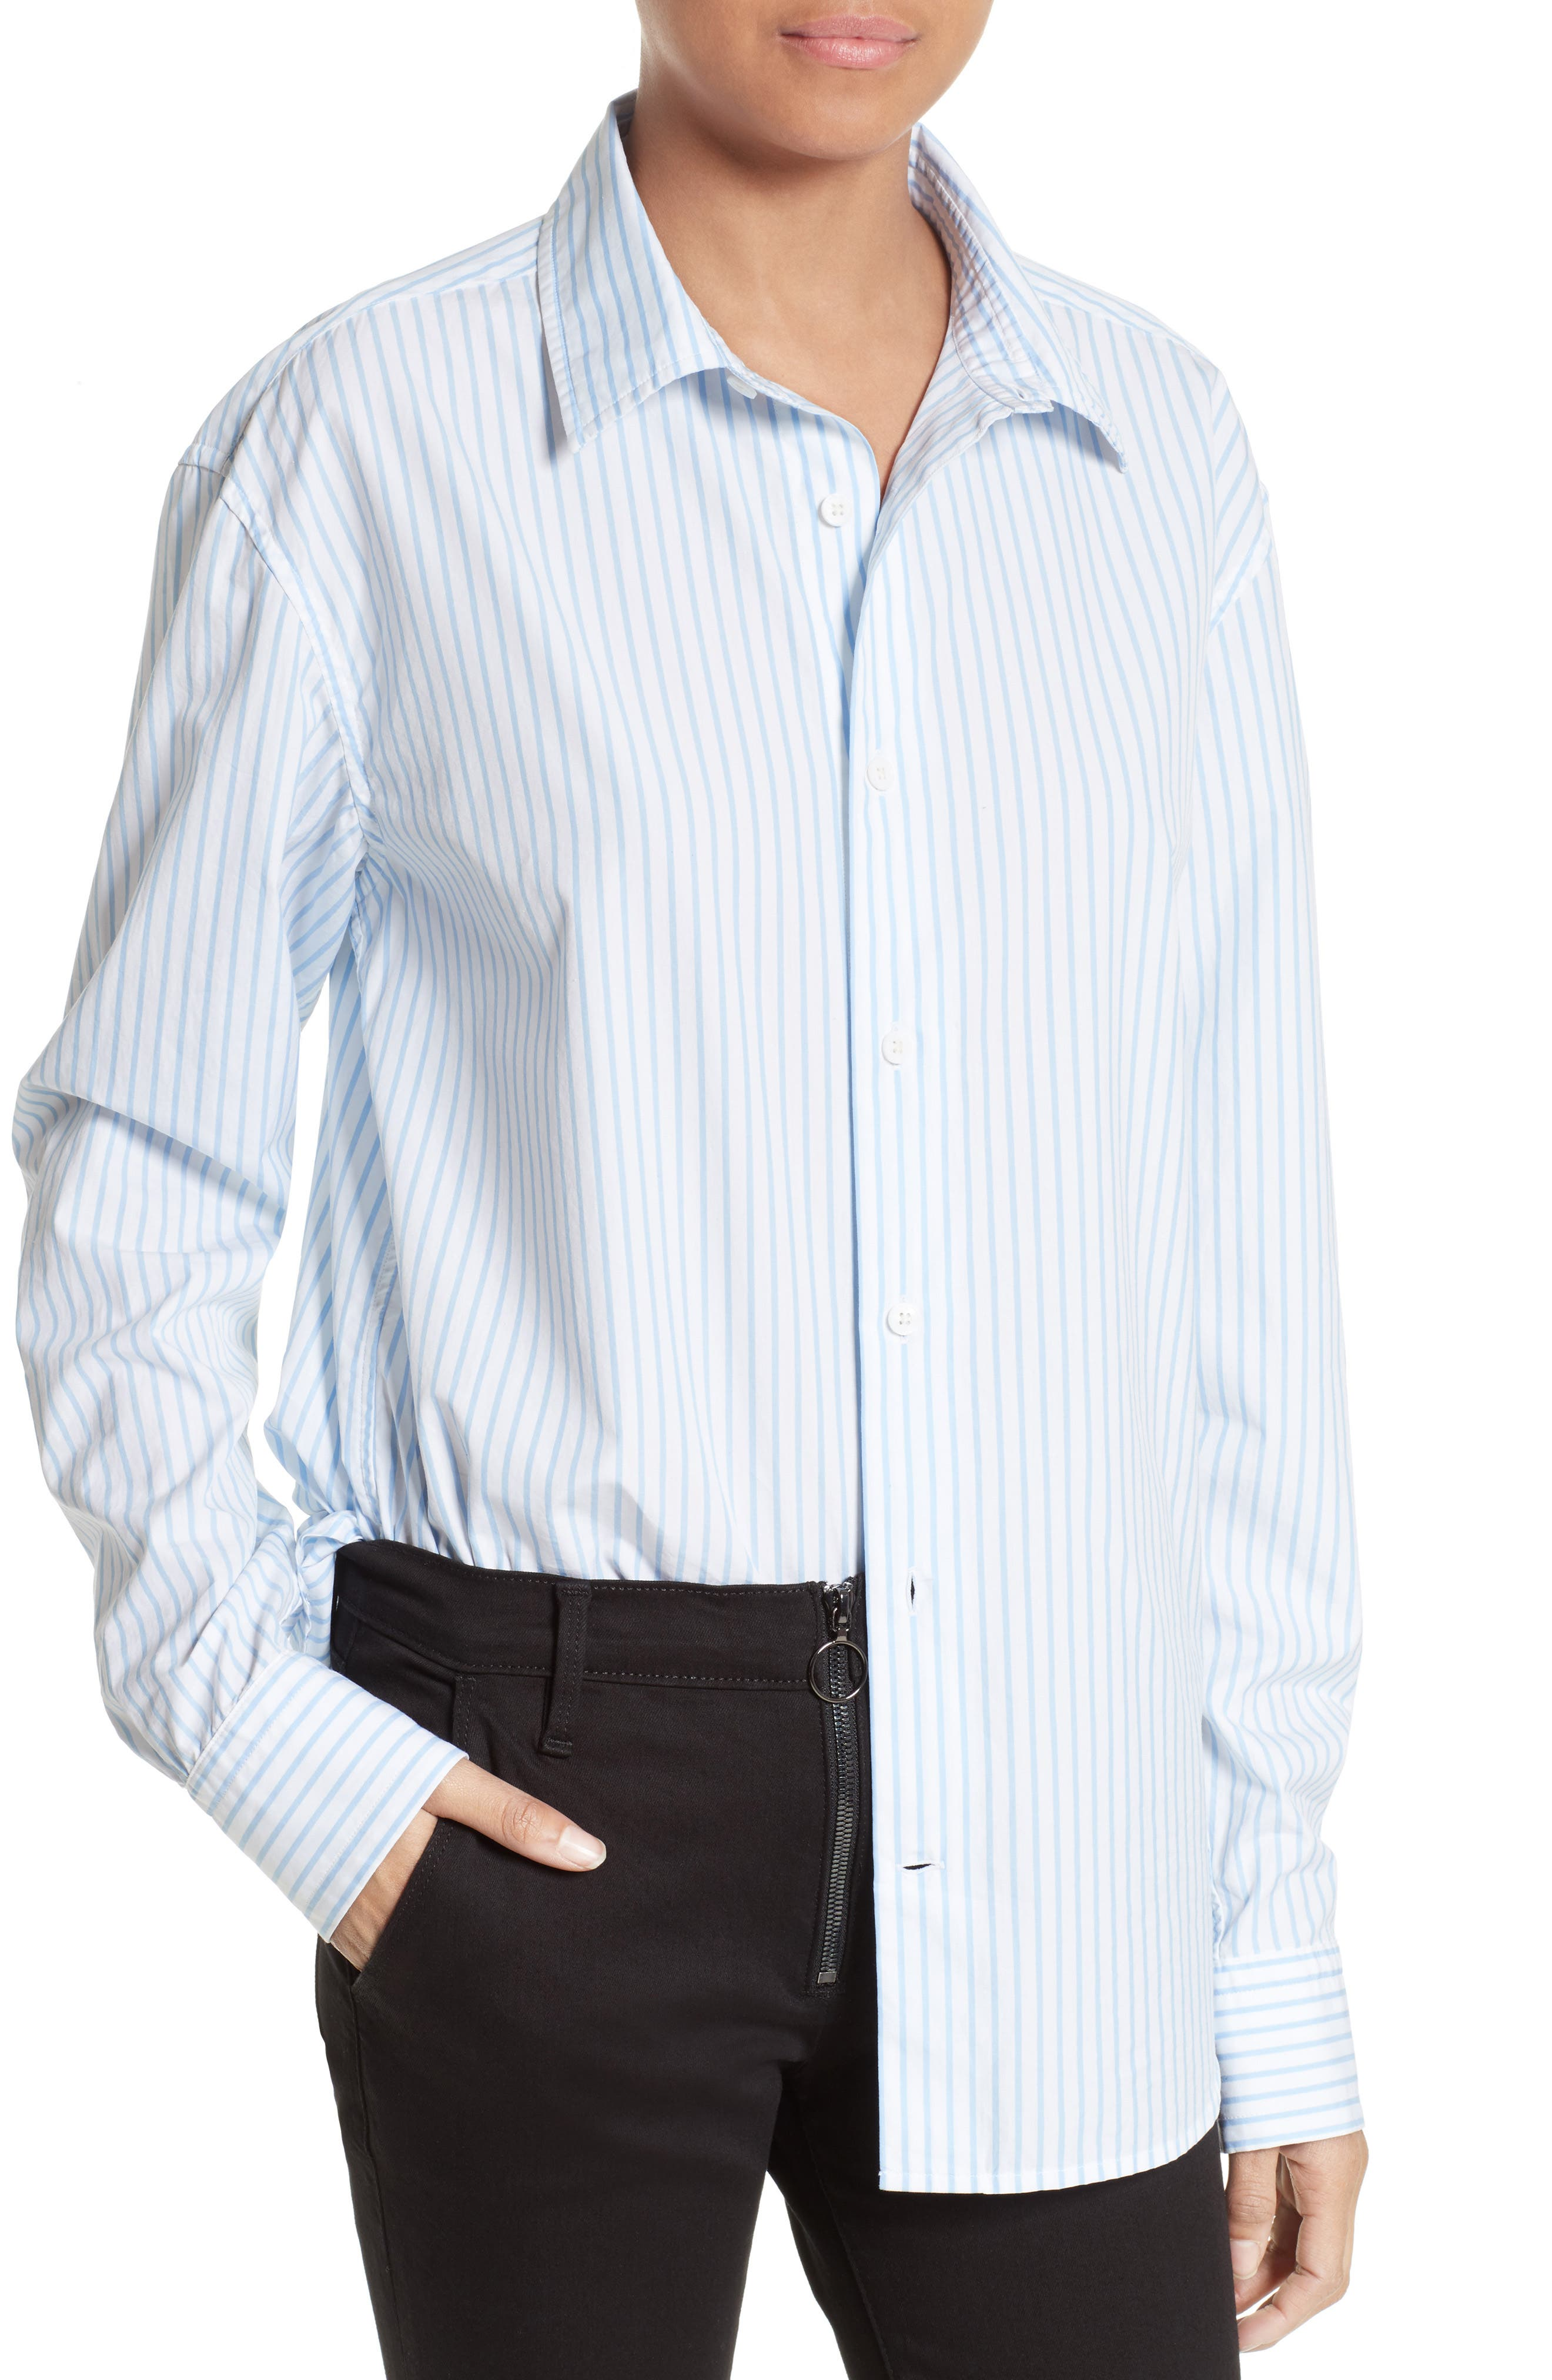 Stripe Poplin Shirt,                             Alternate thumbnail 4, color,                             161